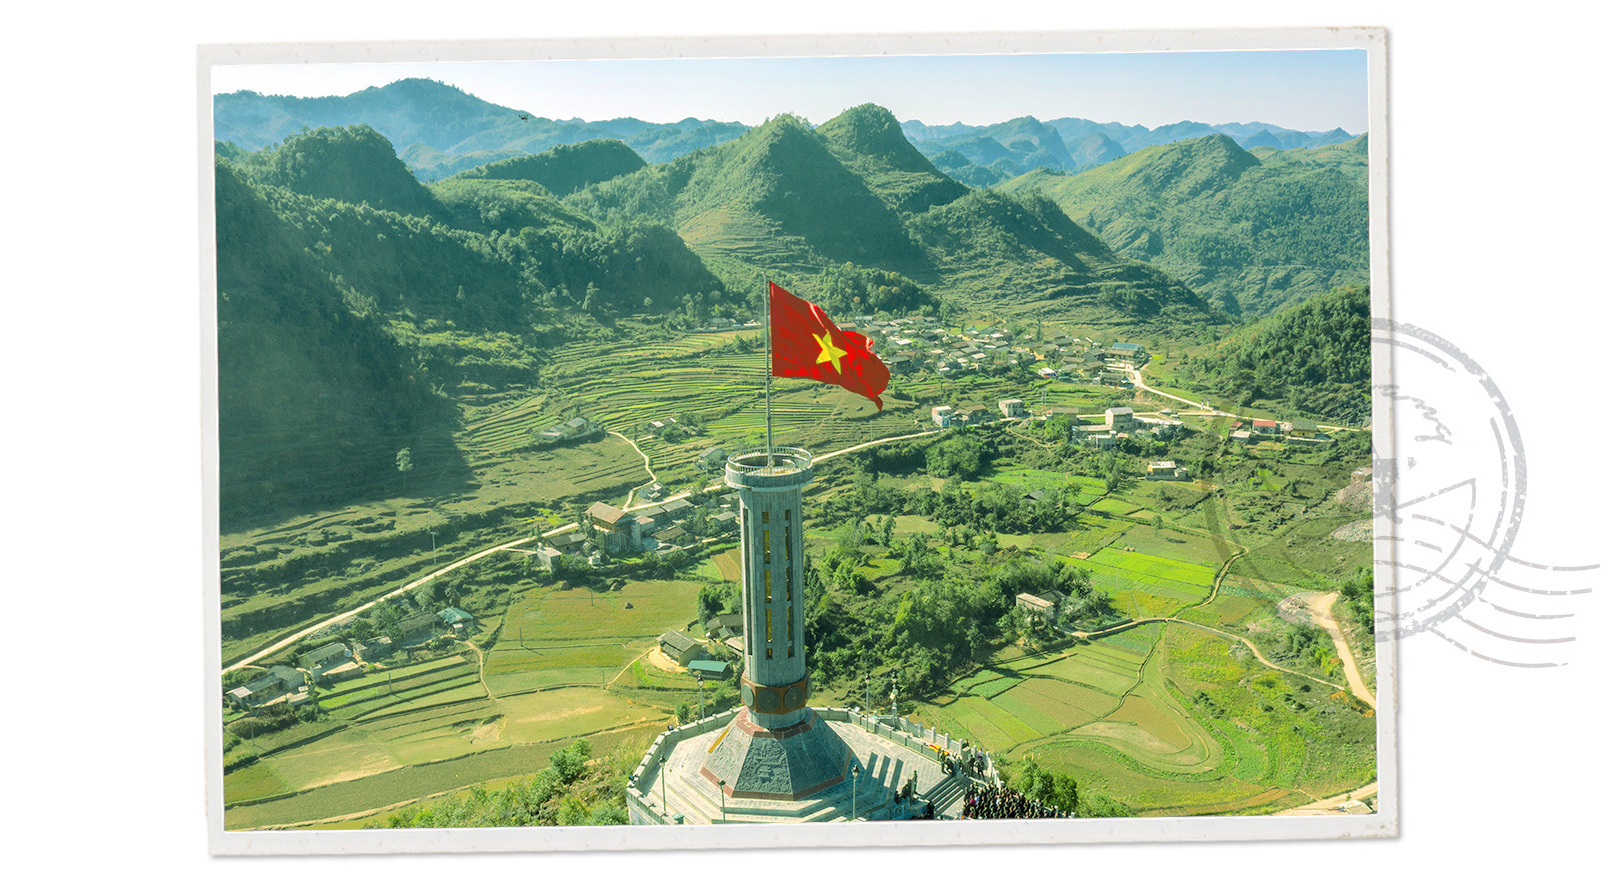 The Lung Cu flagpole in Dong Van District, Ha Giang Province, Vietnam.